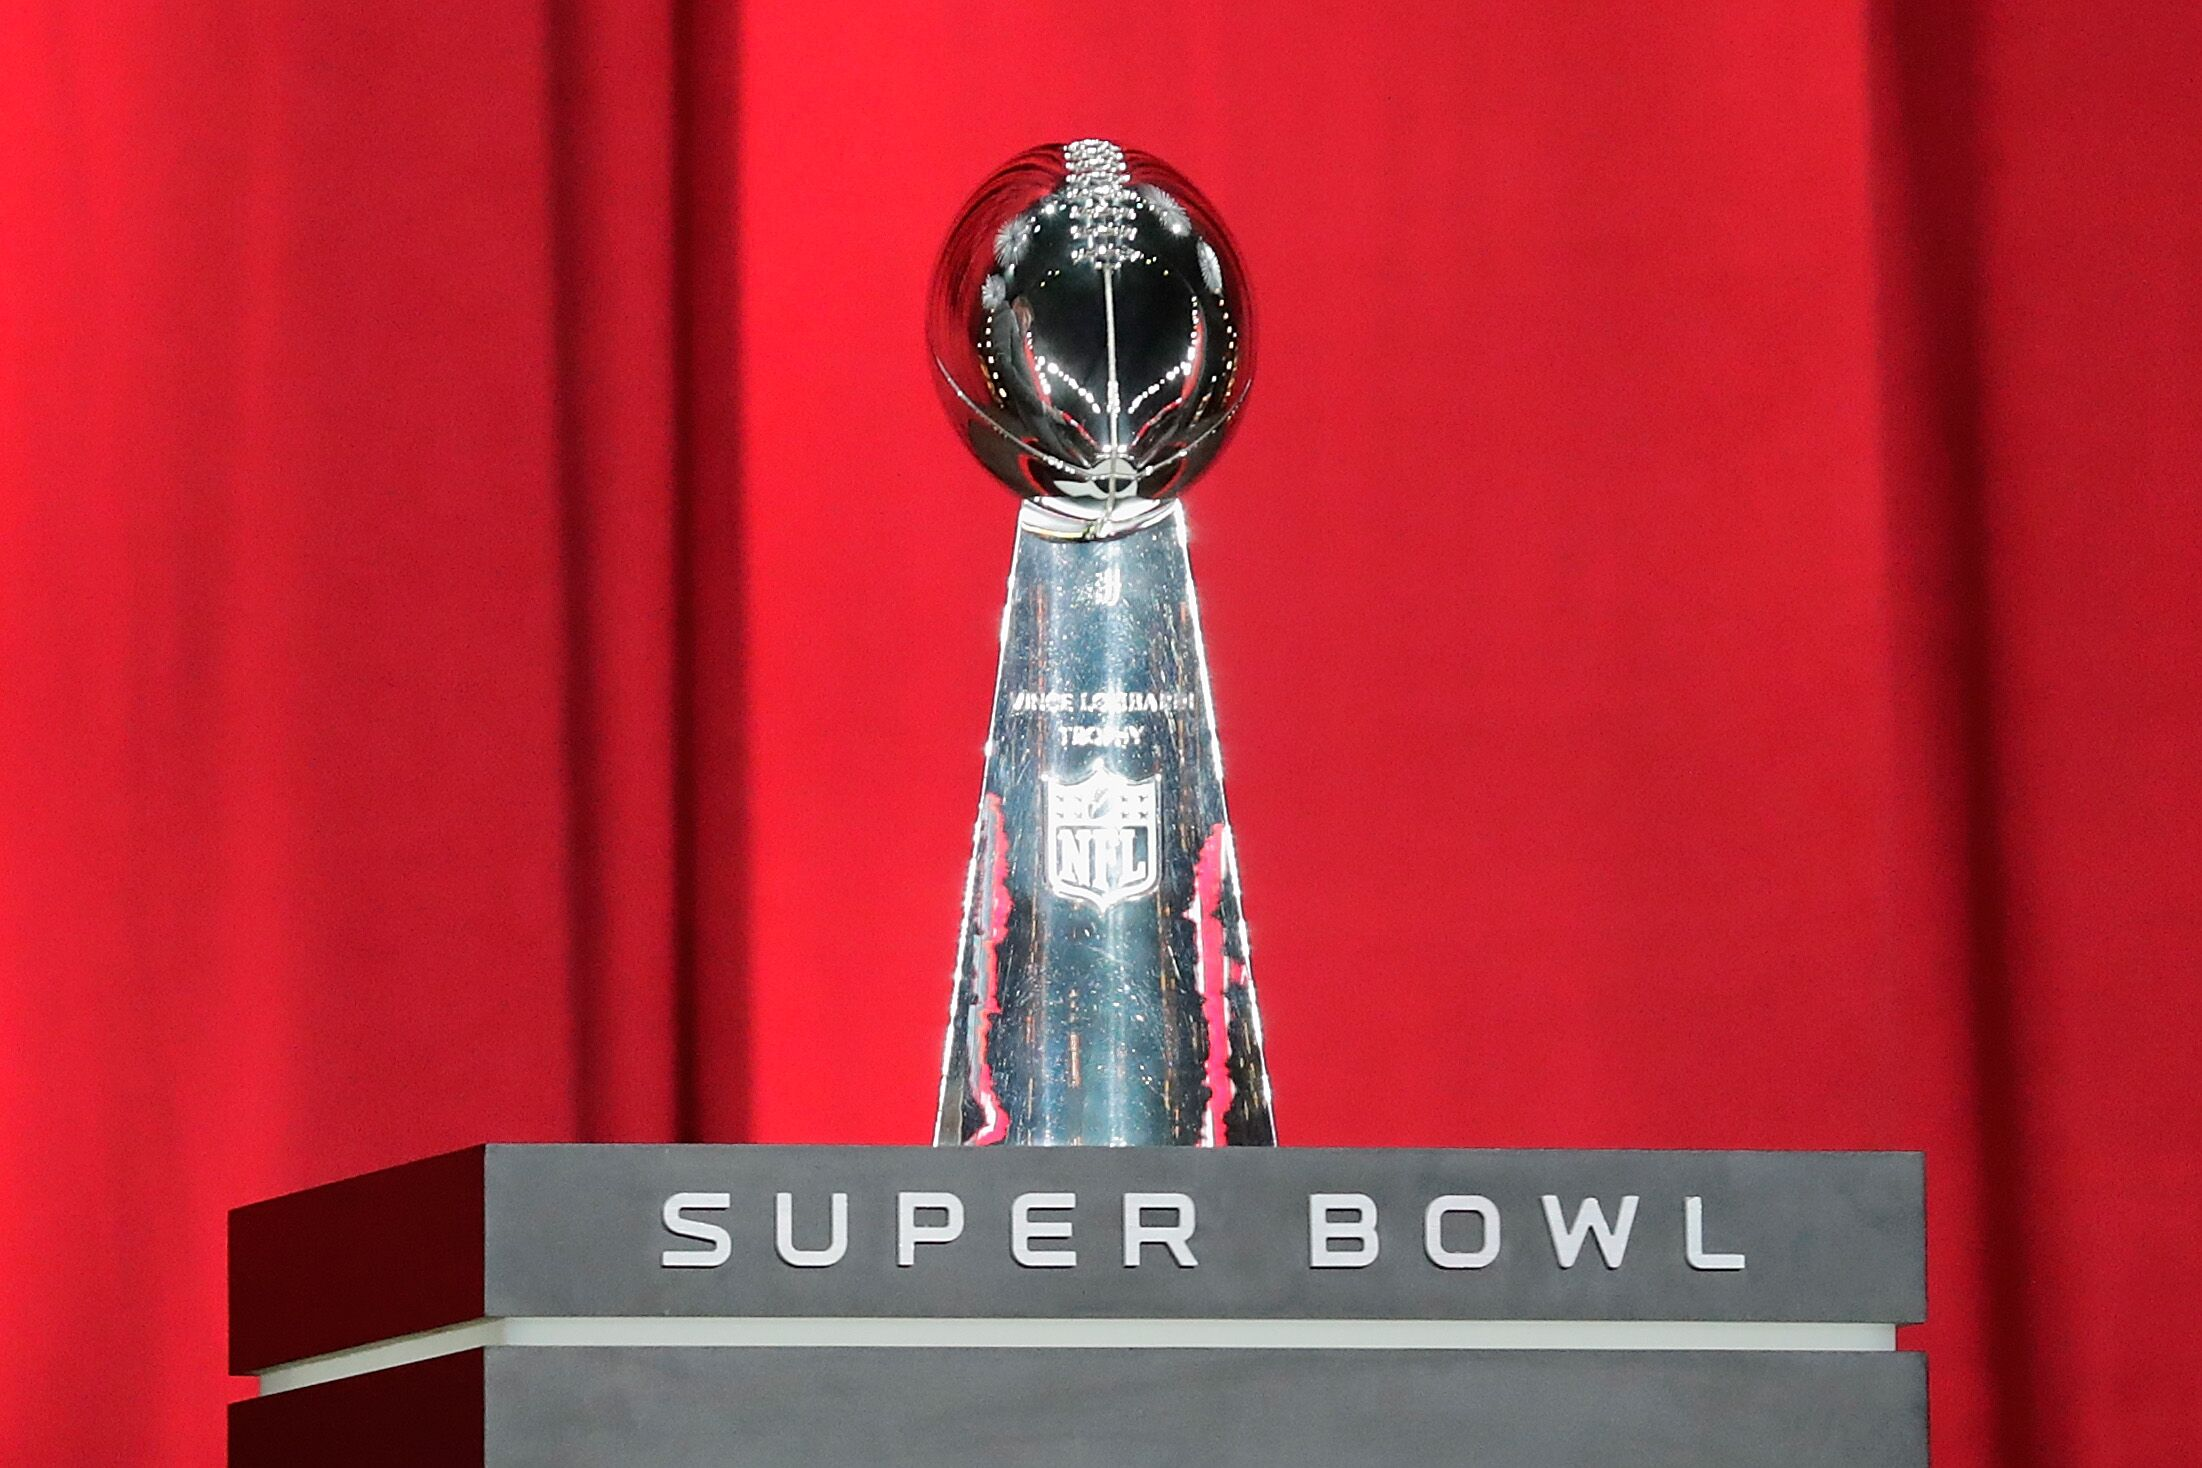 superbowl 2019 date - photo #37